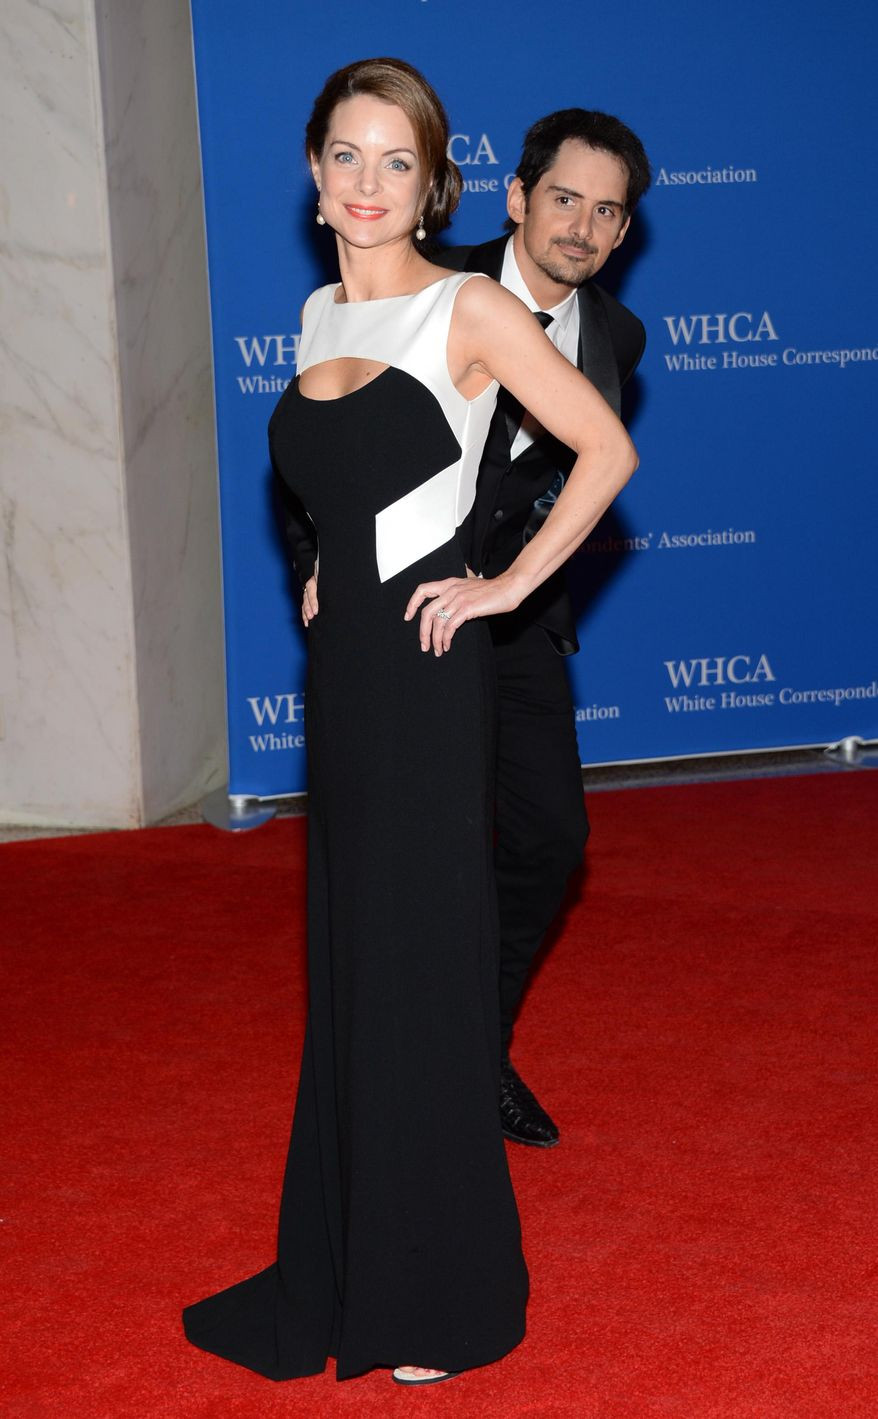 Kimberly Williams-Paisley, left, and Brad Paisley arrive at the White House Correspondents' Association Dinner at the Washington Hilton Hotel, Saturday, May 3, 2014, in Washington. (Photo by Evan Agostini/Invision/AP)